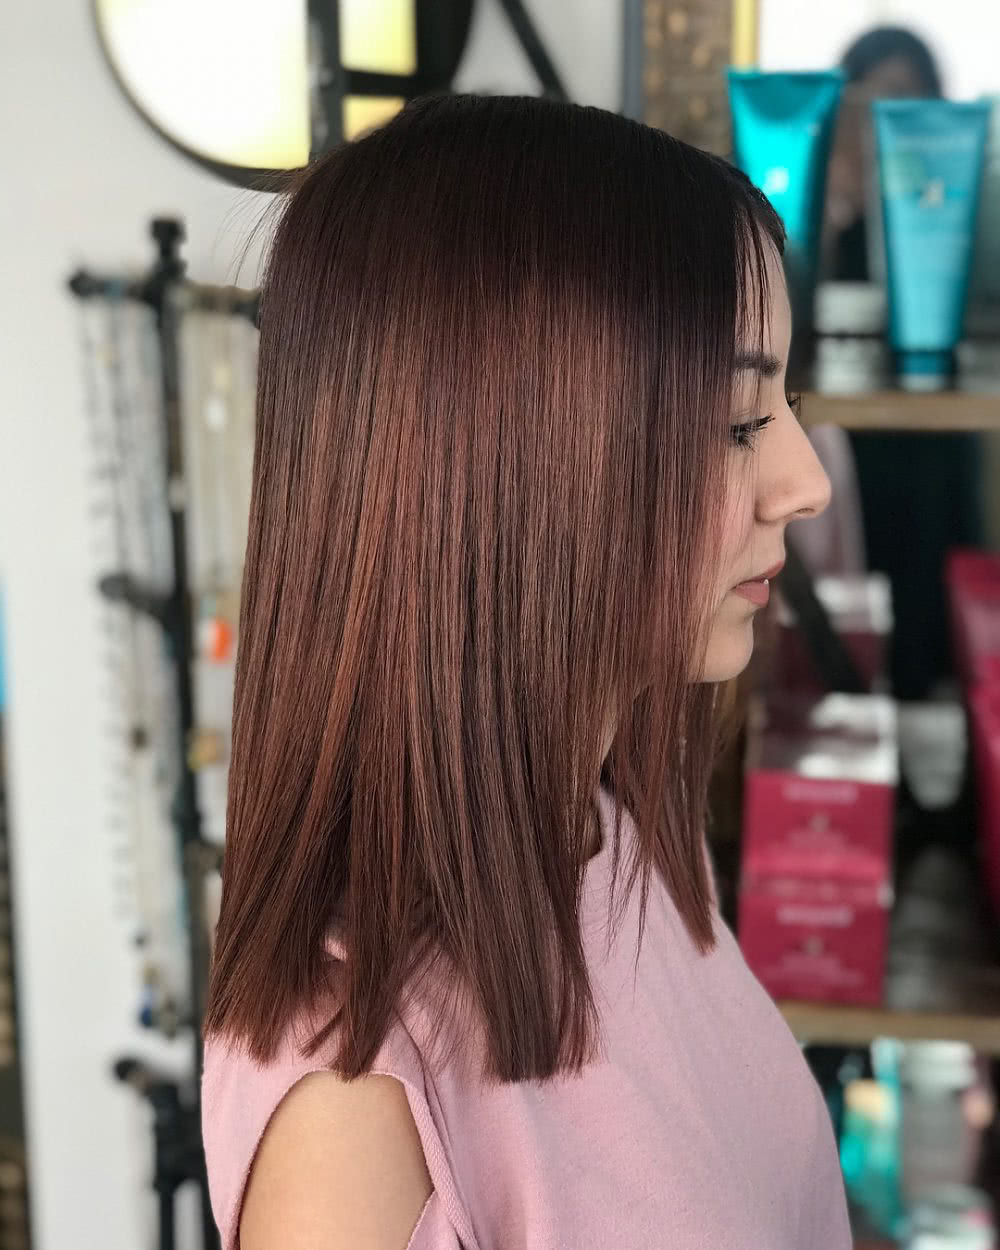 Preferred Medium Hairstyles For Round Faces Black Hair Within 17 Flattering Medium Hairstyles For Round Faces In (View 18 of 20)